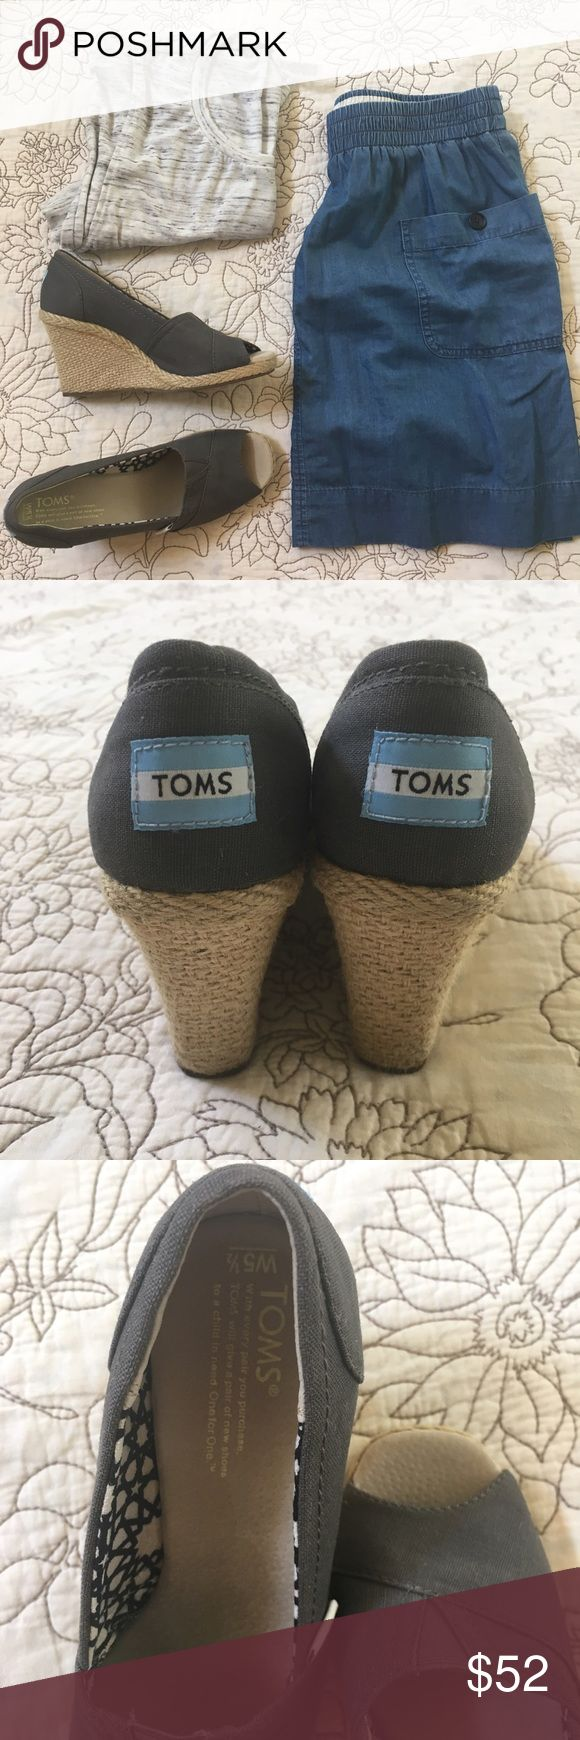 TOMS Grey Peep Toe Wedges - 5.5 Classic TOMS wedges! So freaking cute, and these are in practically perfect condition. Canvas upper, jute sides. Some wear on bottom from my sister in law wearing them (only once!). Perfectly clean, ready to rock the dance floor or date night. 💃🏼 Toms Shoes Wedges